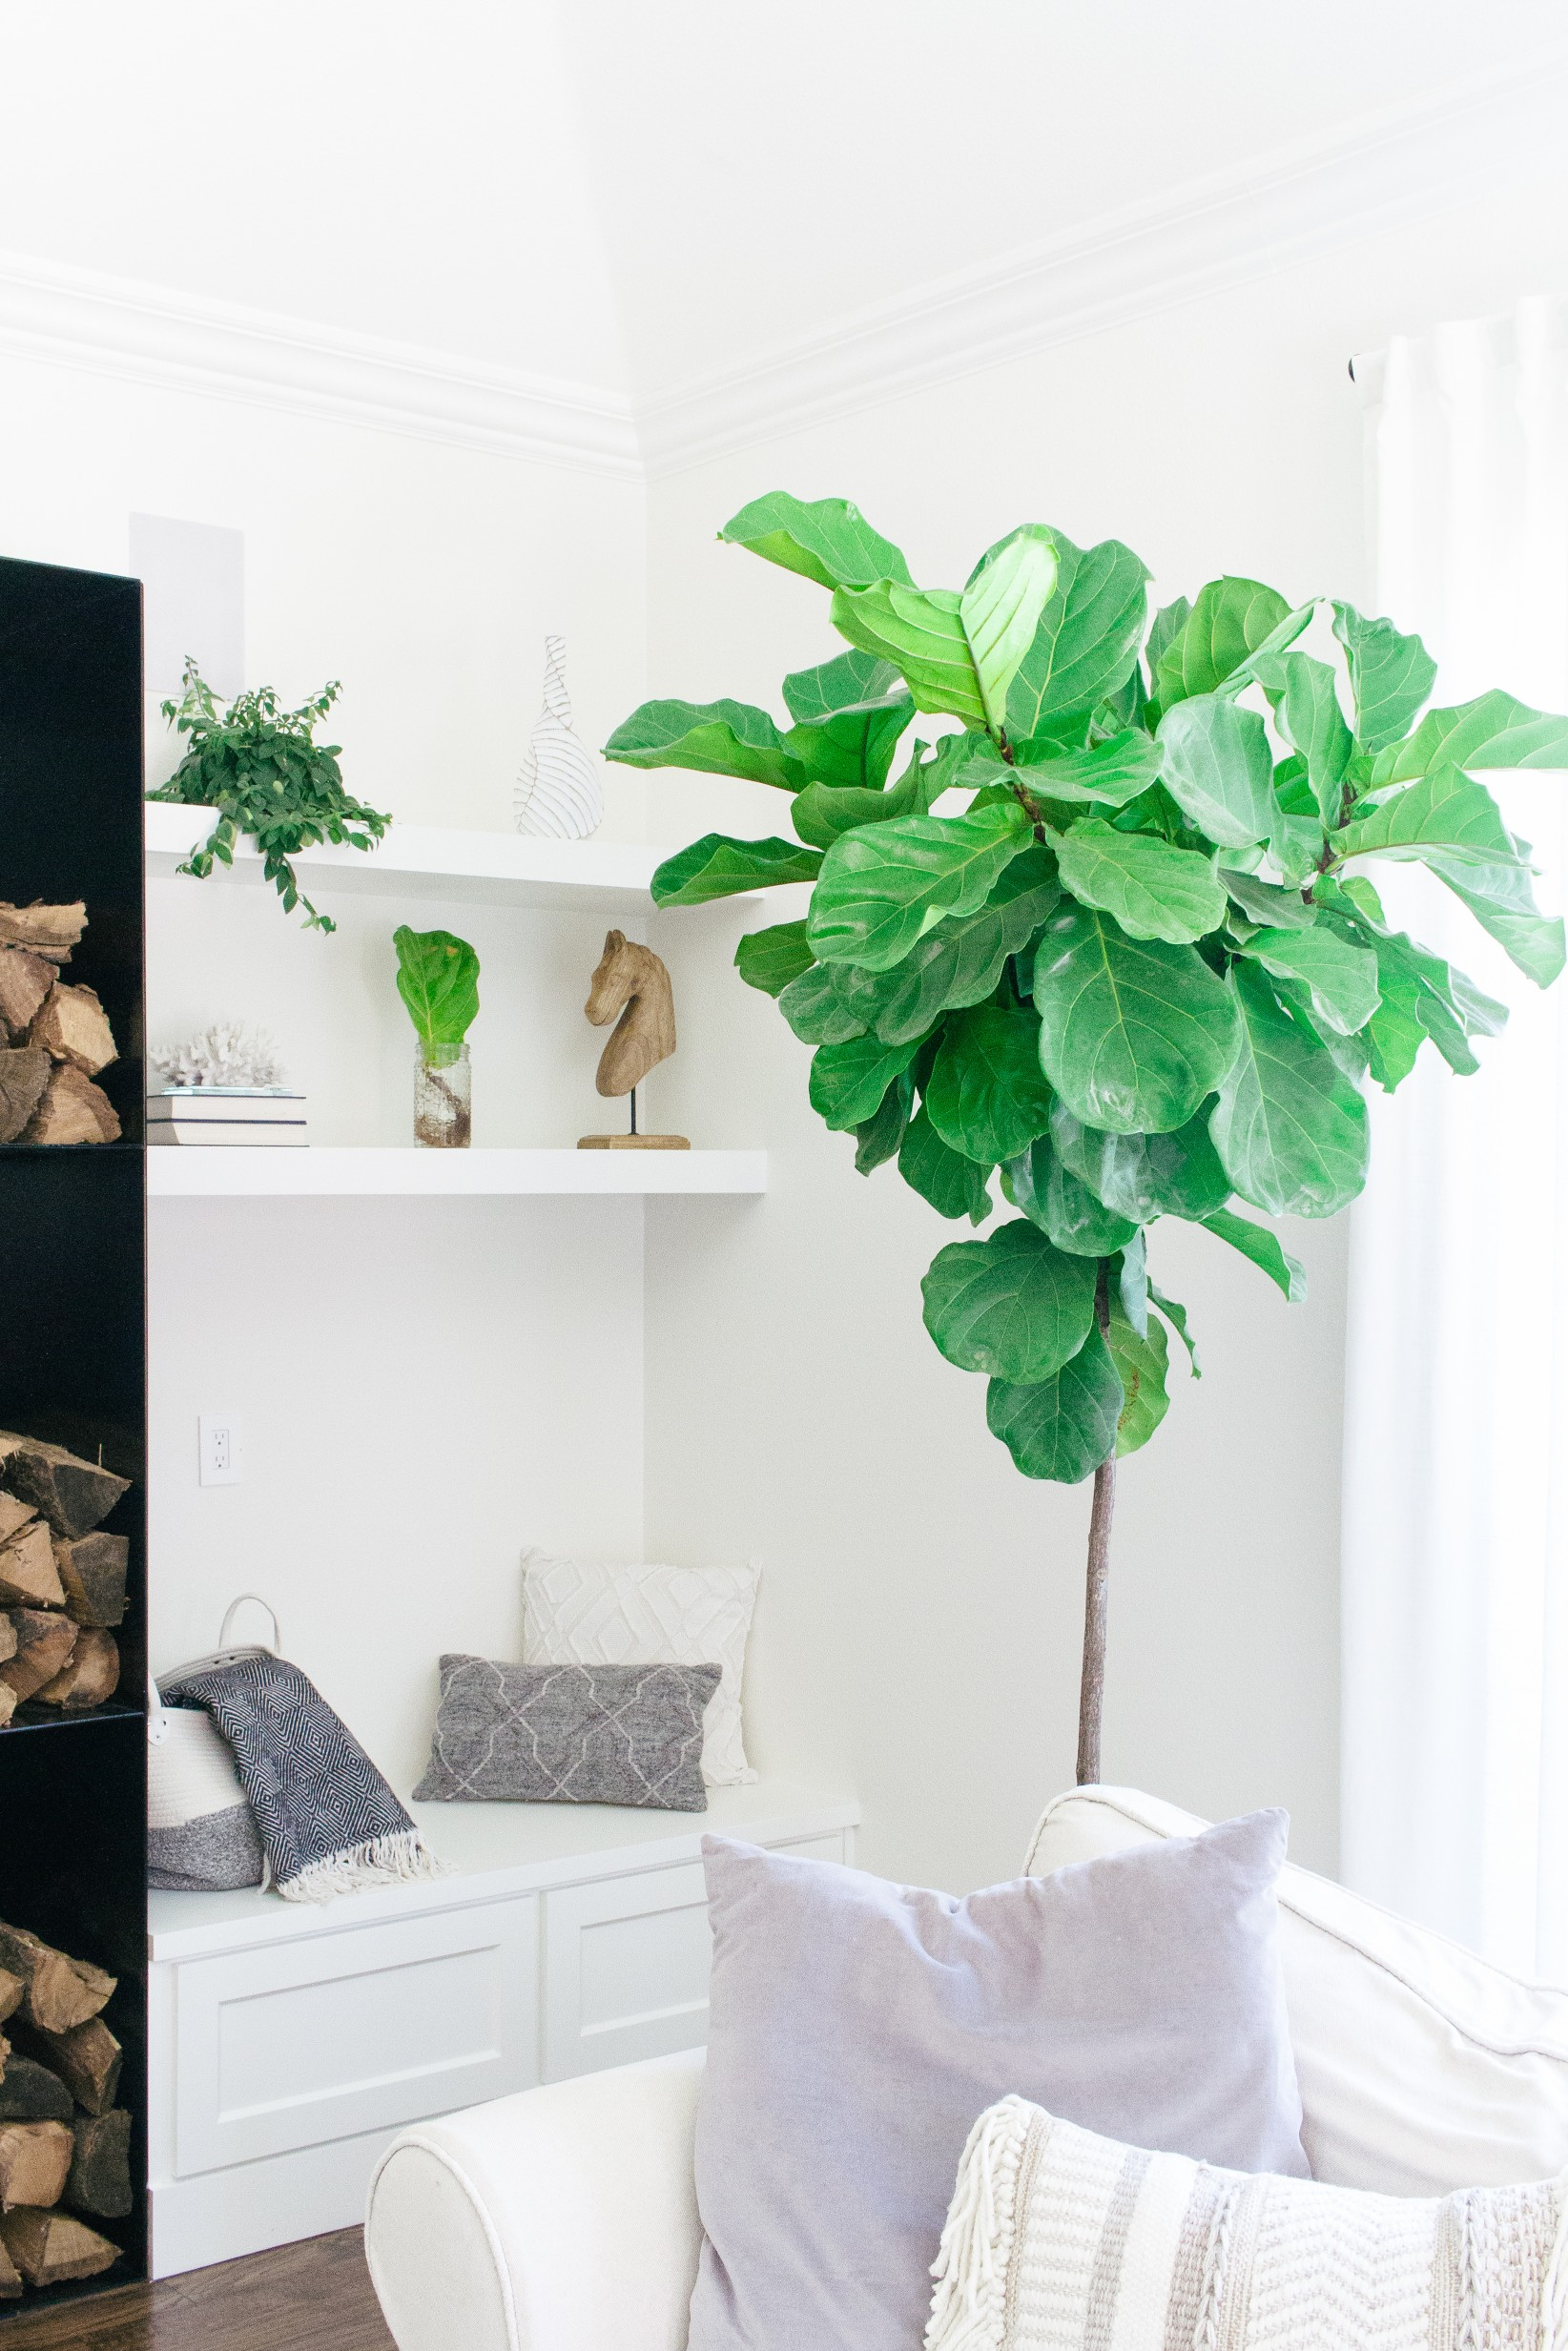 Our House Plants - Fiddle Leaf Fig Care Tip